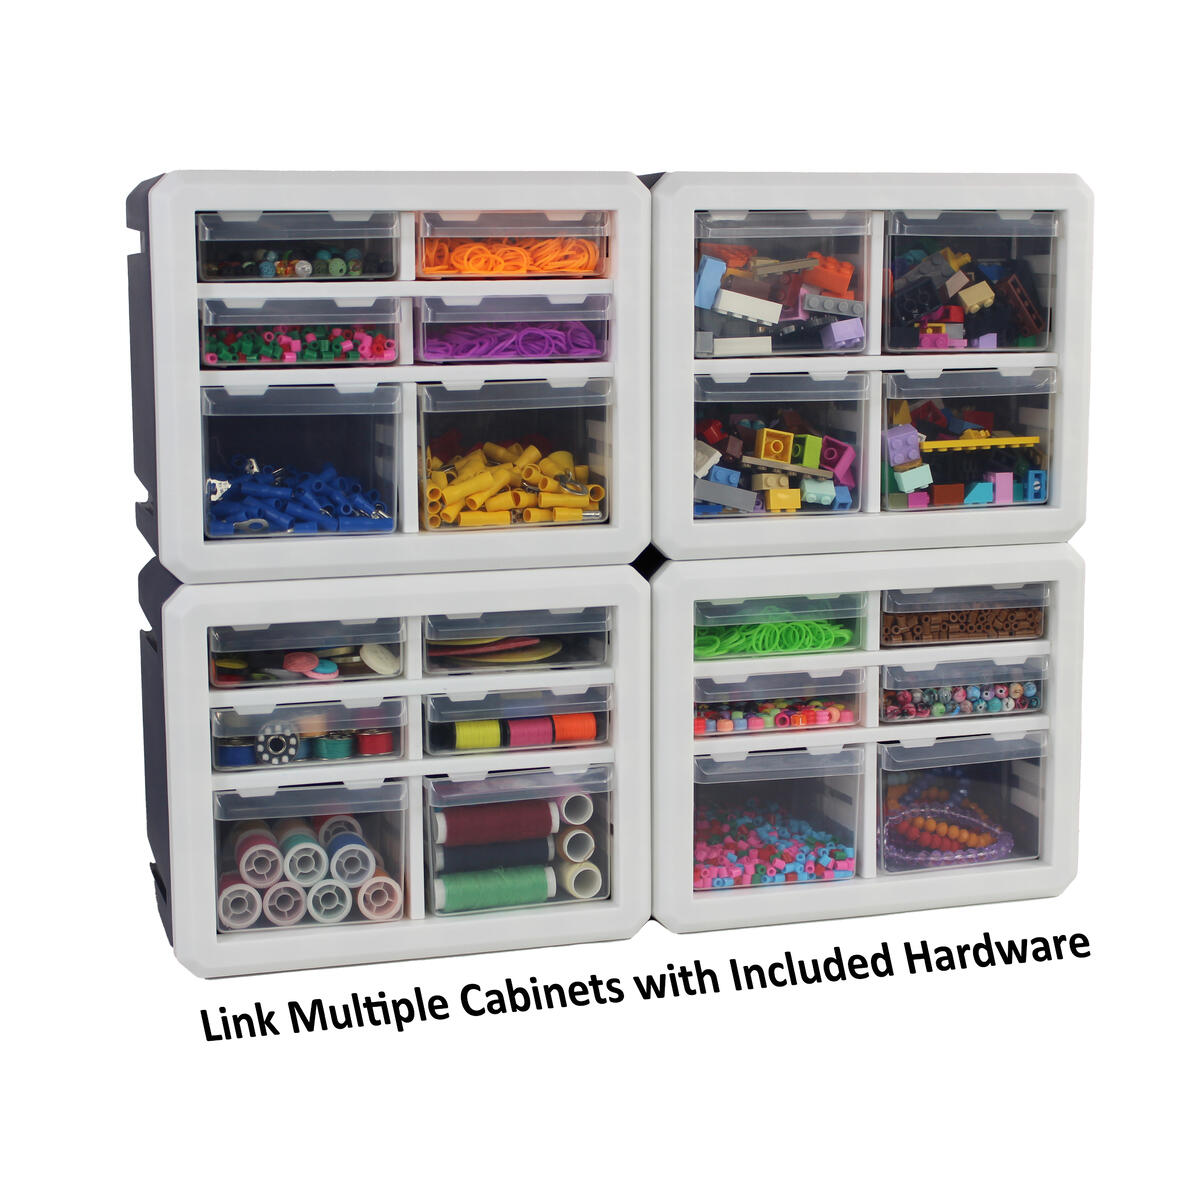 Bins & Things Mini Desk Craft Organizer 6 Small Drawers with Removable Dividers, Arts & Crafts Parts, Teacher Toolbox Organizer, Sewing Craft Cabinet, Hardware Organizers (9.25 x 5.5 x 7.75)